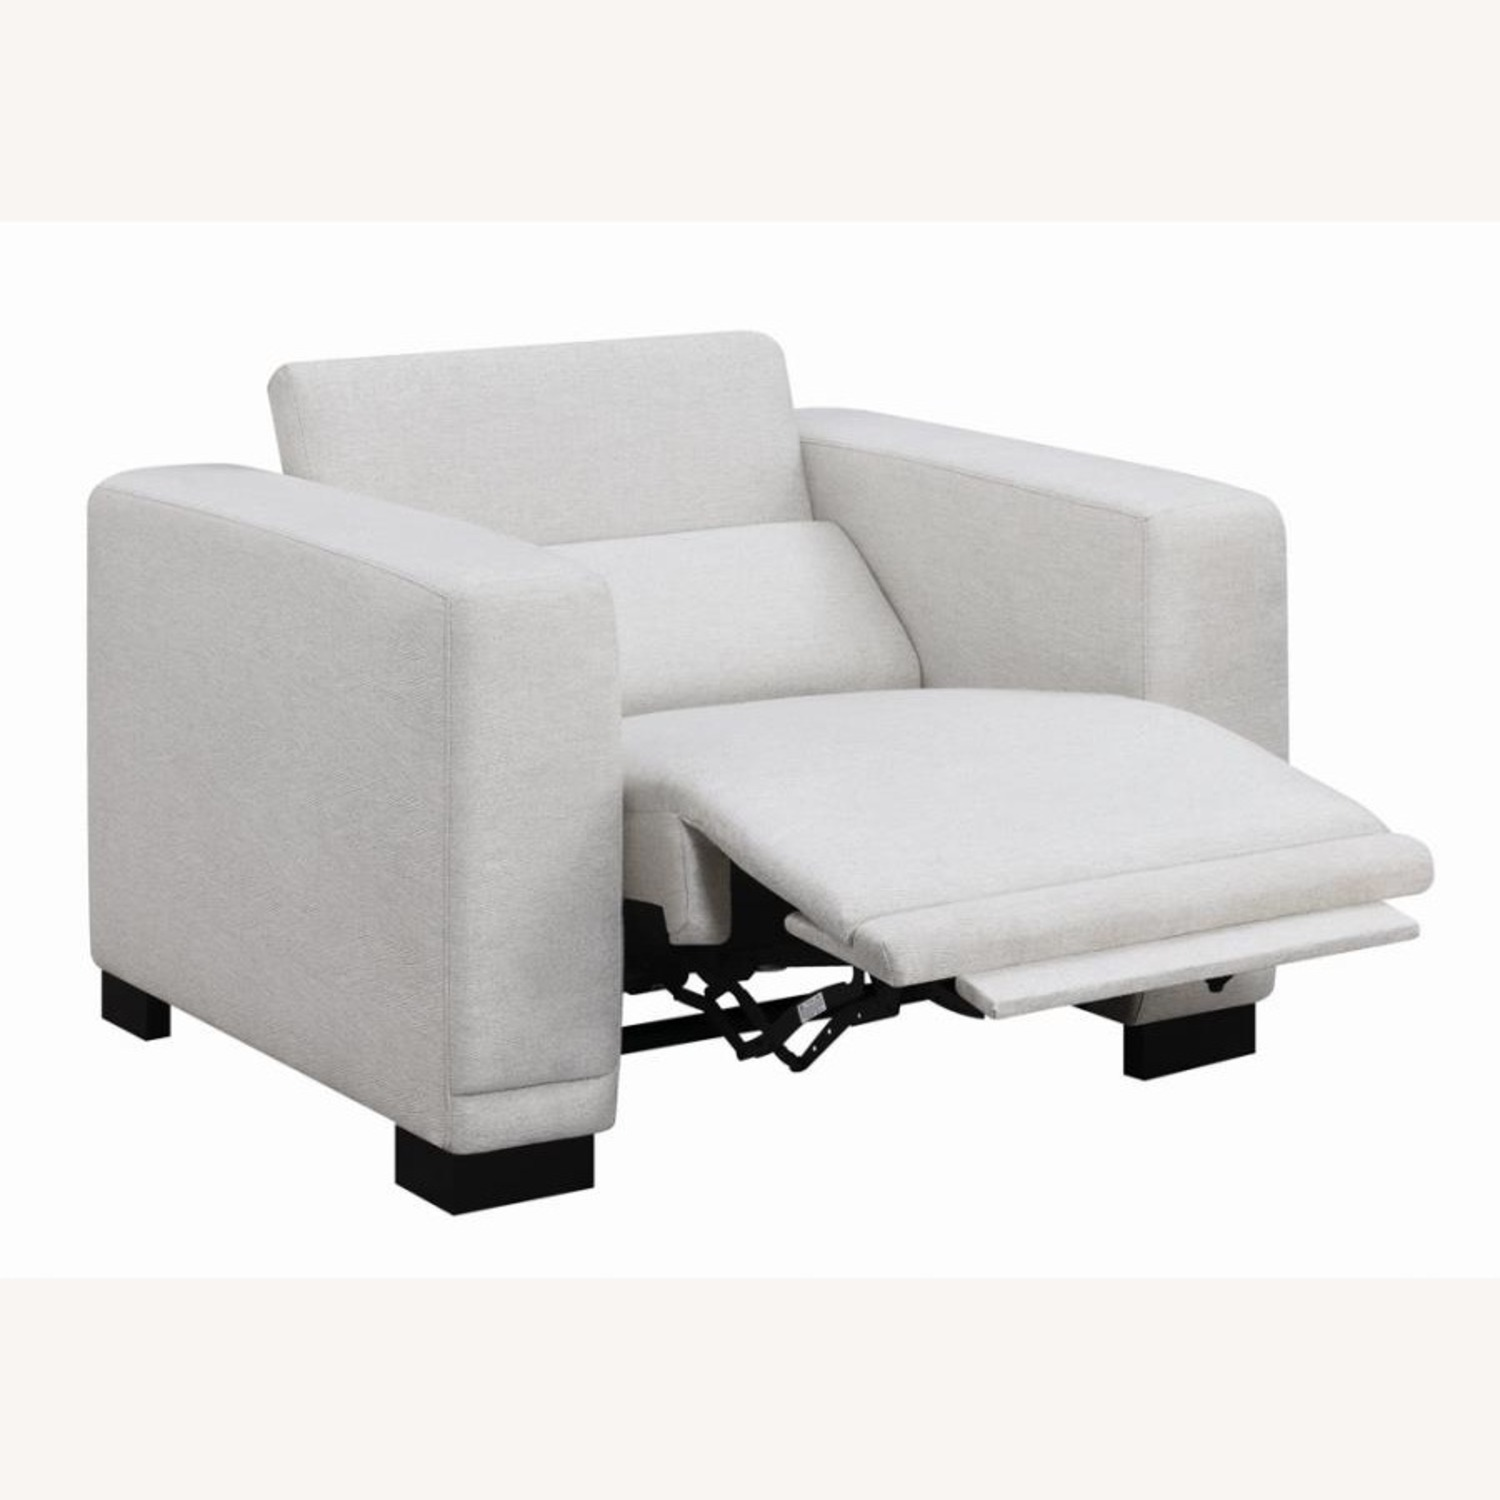 Power Recliner In Beige Chenille Fabric - image-1